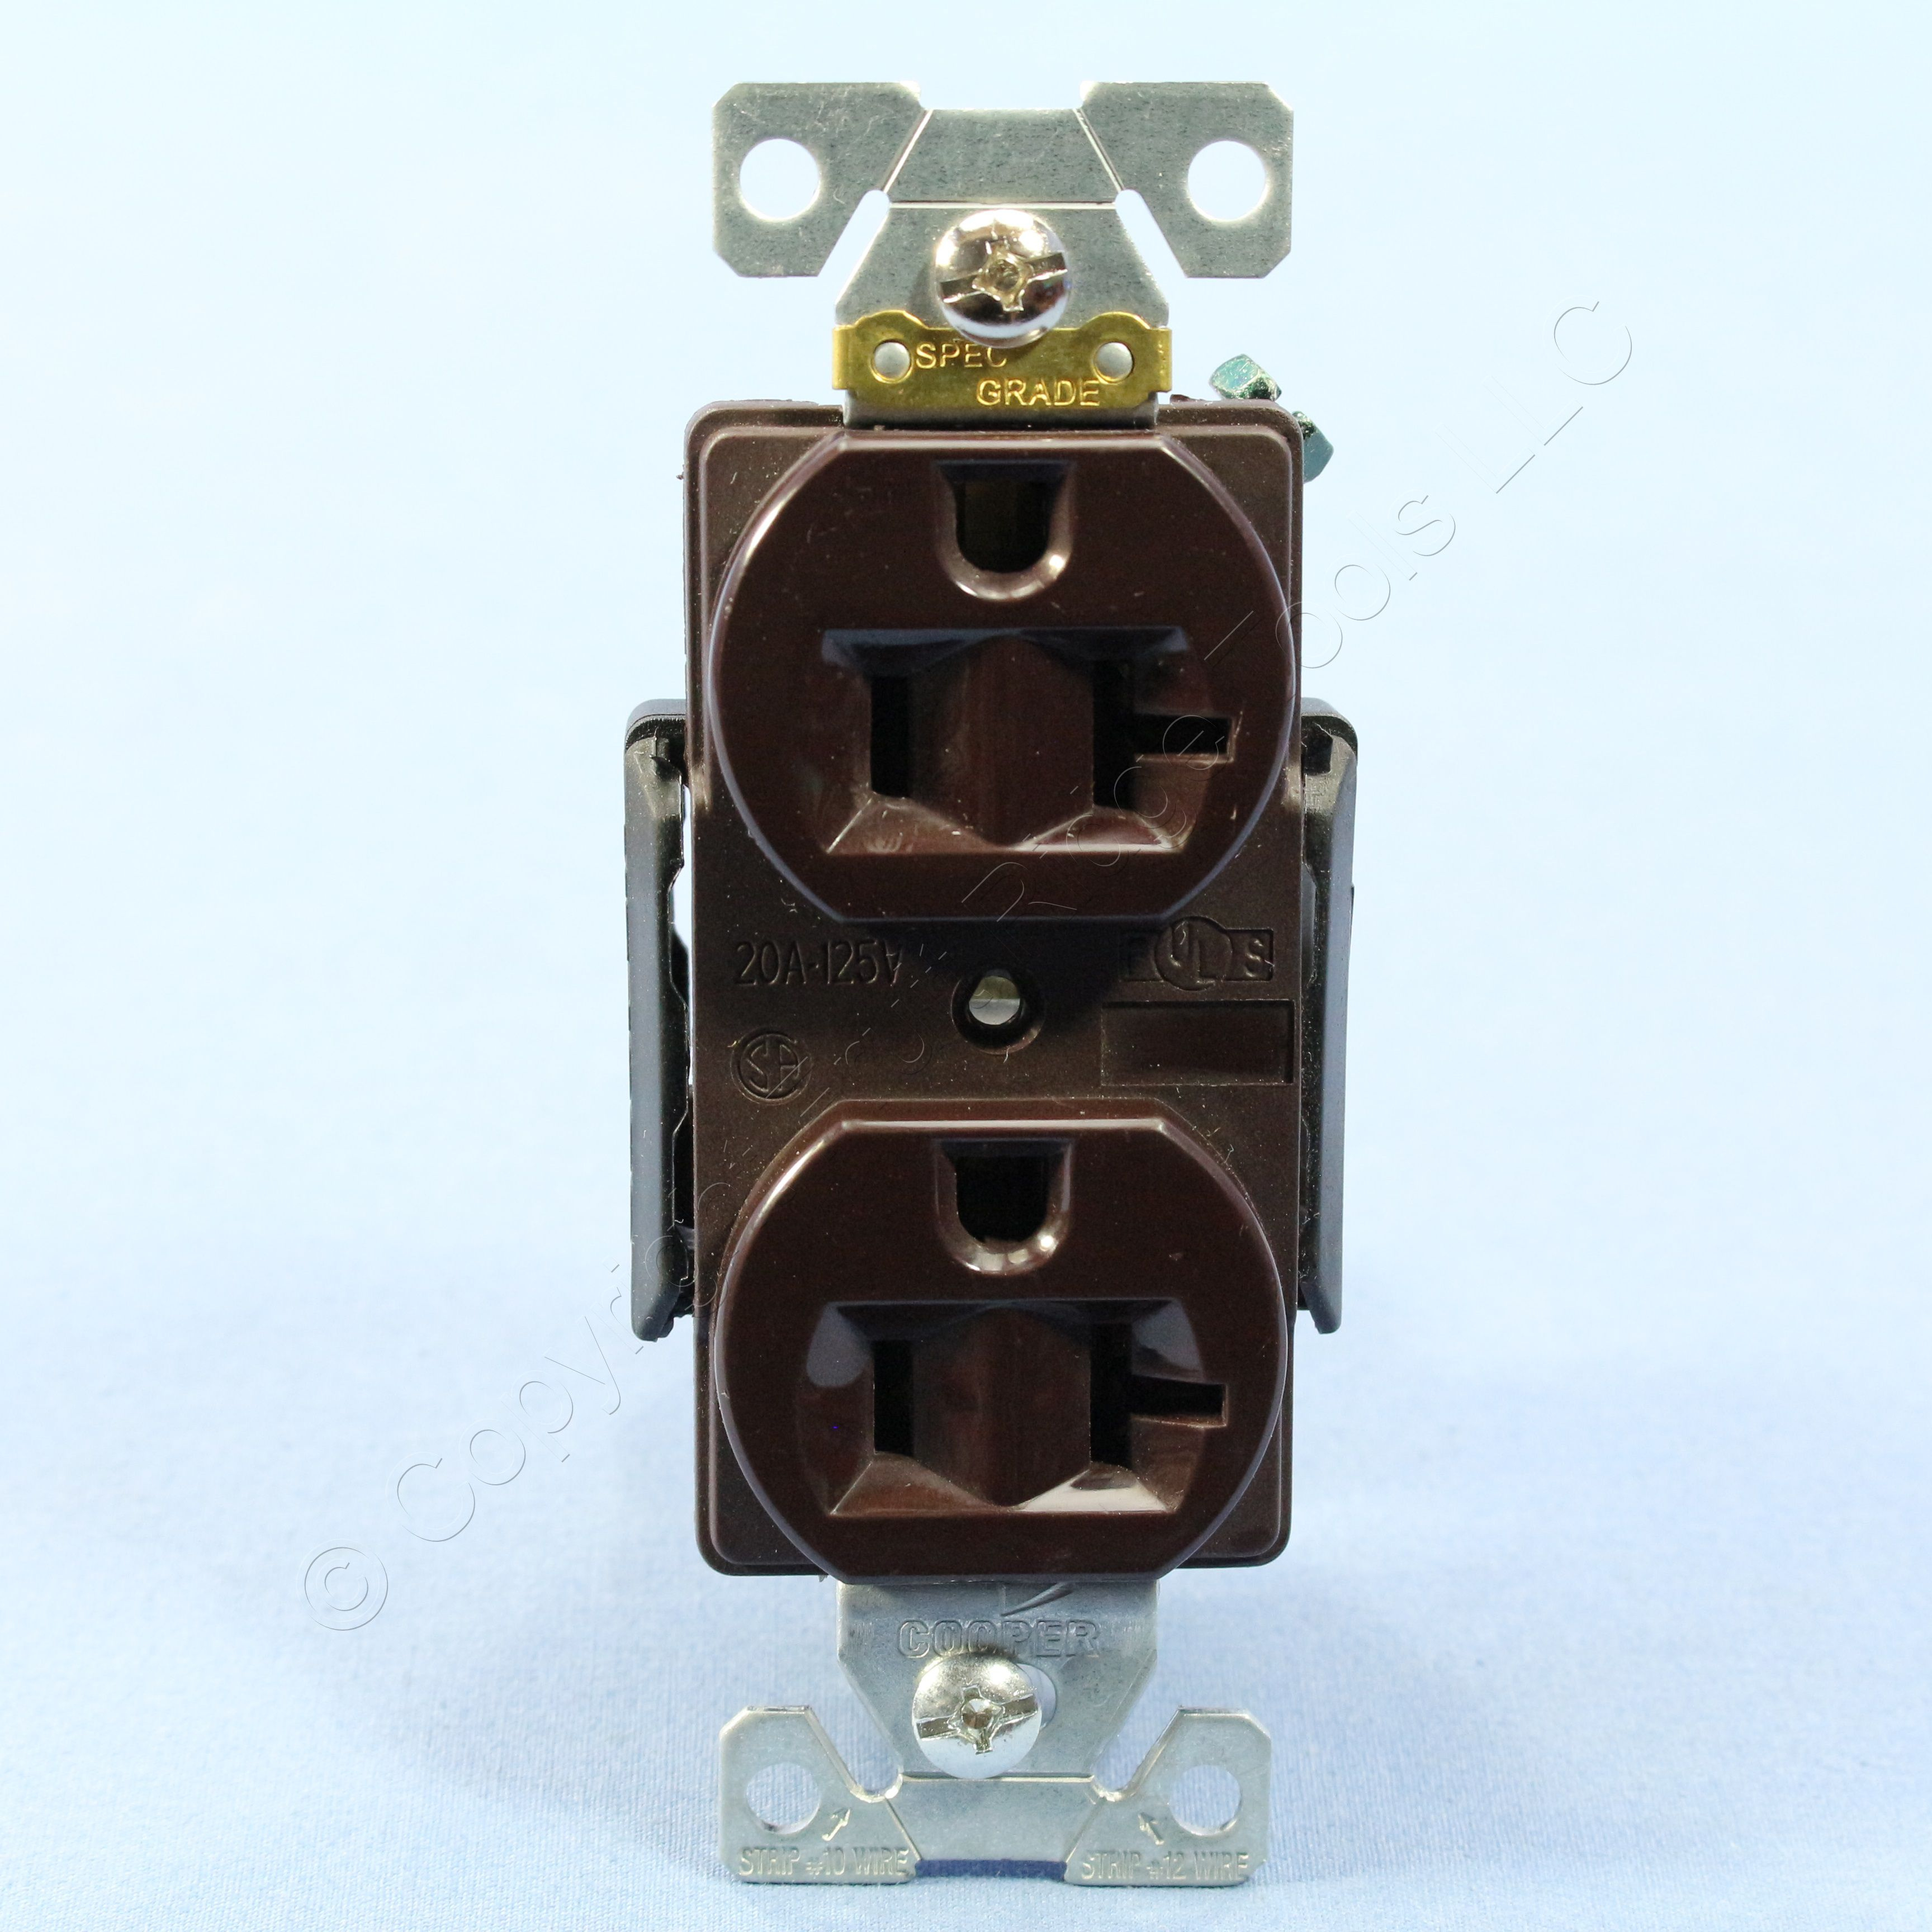 Arrow Outlets Giftsforsubs Hart 5709n Power Receptacle 50a 250v Nema 650 2pole 3wire Ebay Brown Const